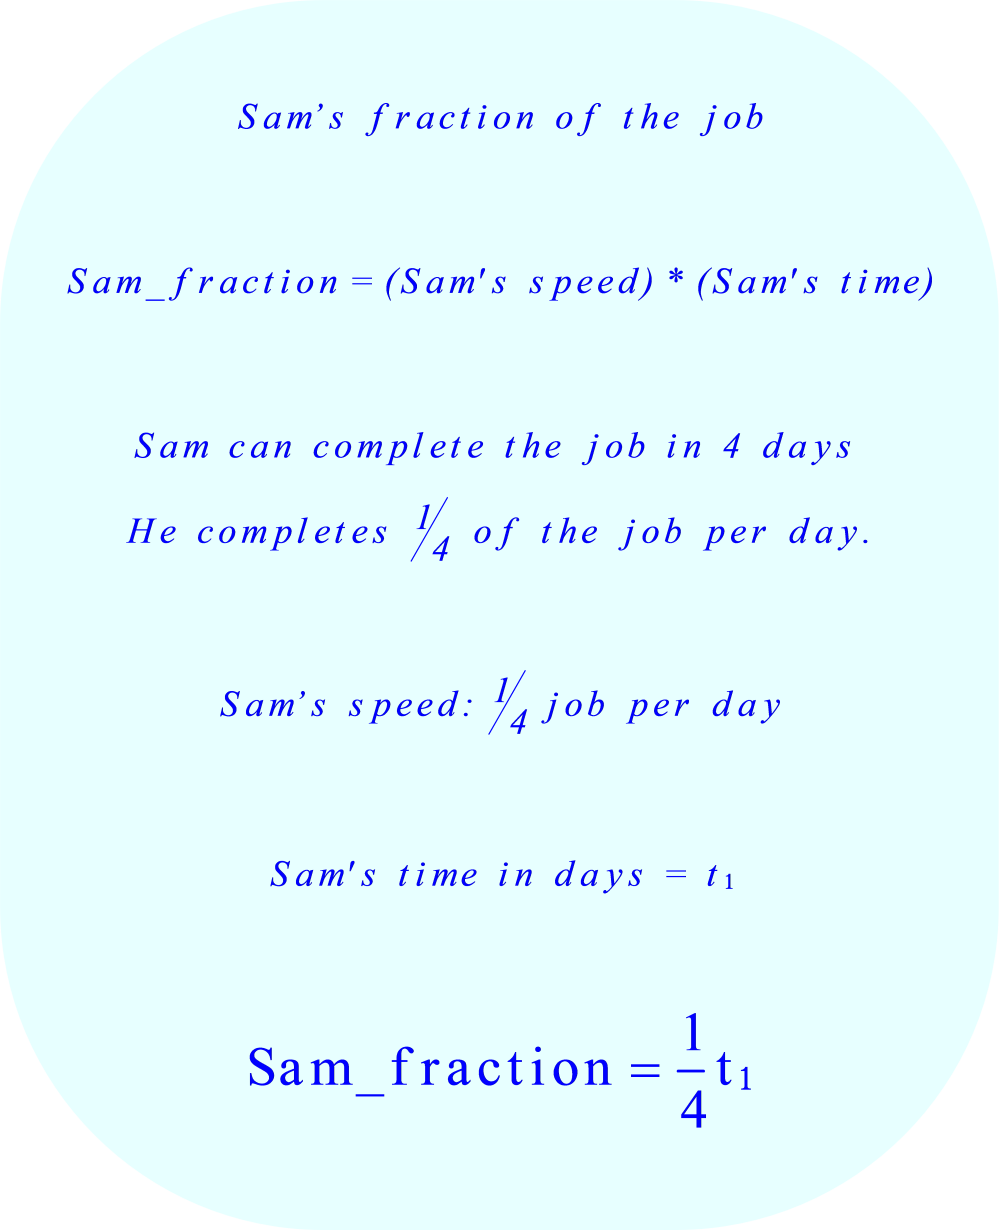 work rate problem:  Sam's fraction of the job. 